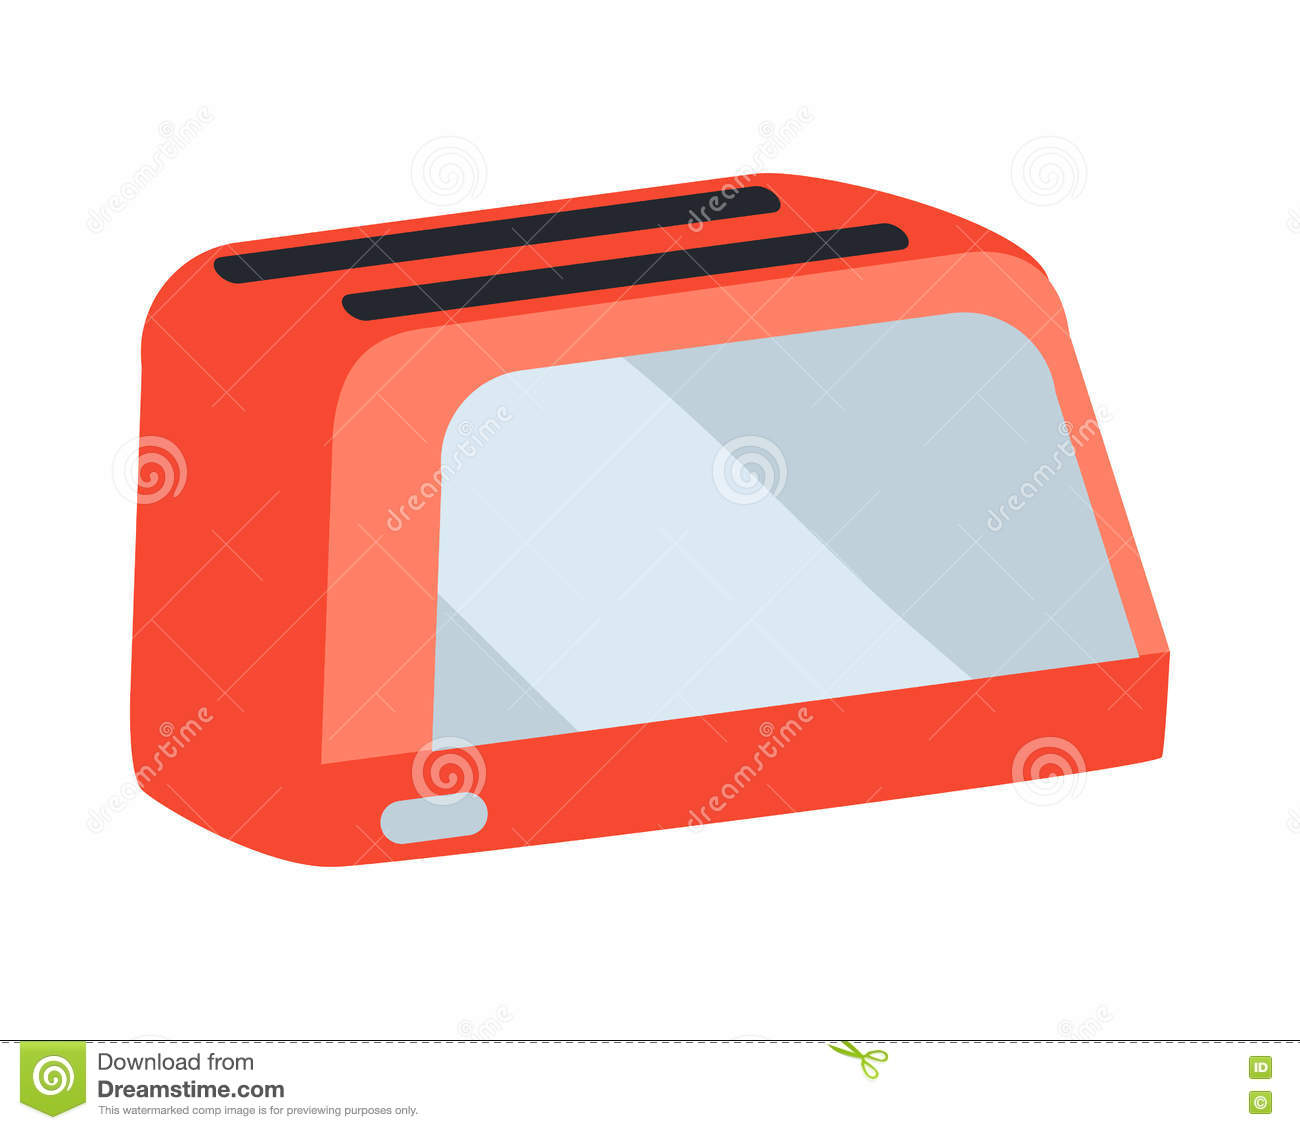 409fdf07ad Red toaster vector icon. Traditional kitchen appliance for roasting slices  of bread vector illustration isolated on white background.